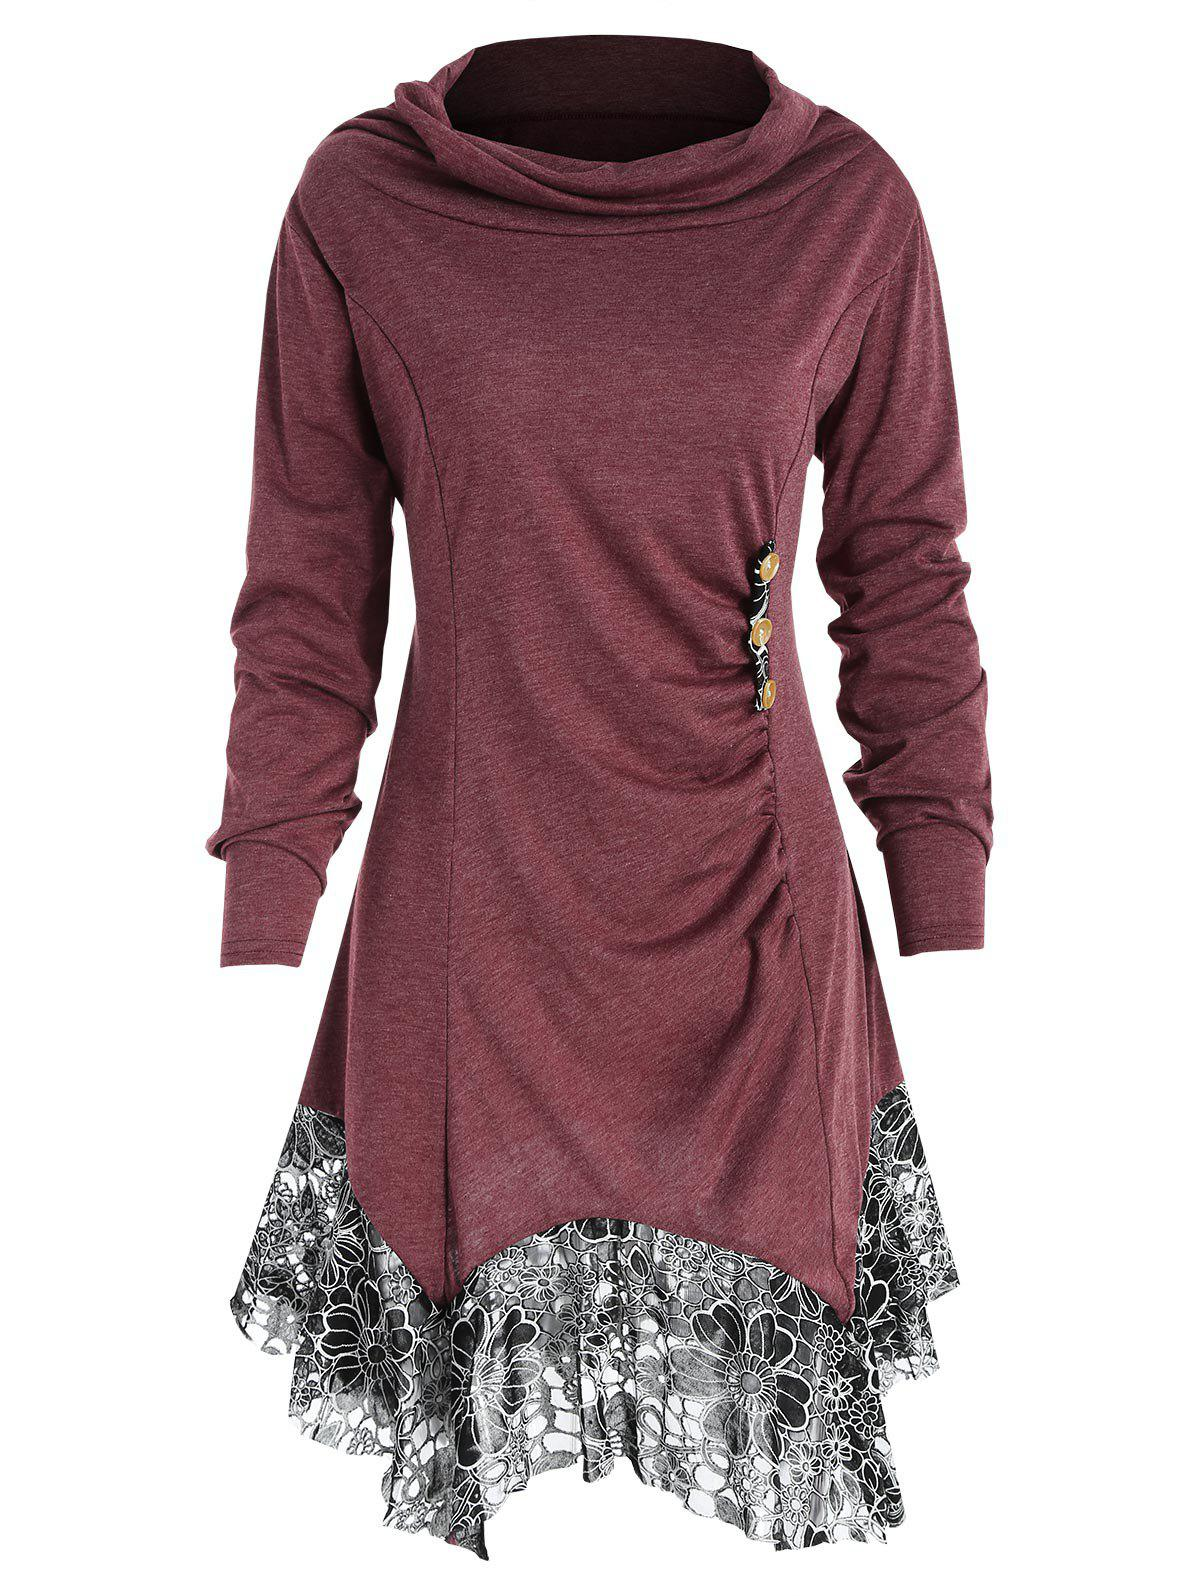 Chic Full Sleeve Heap Collar Skirted T-shirt